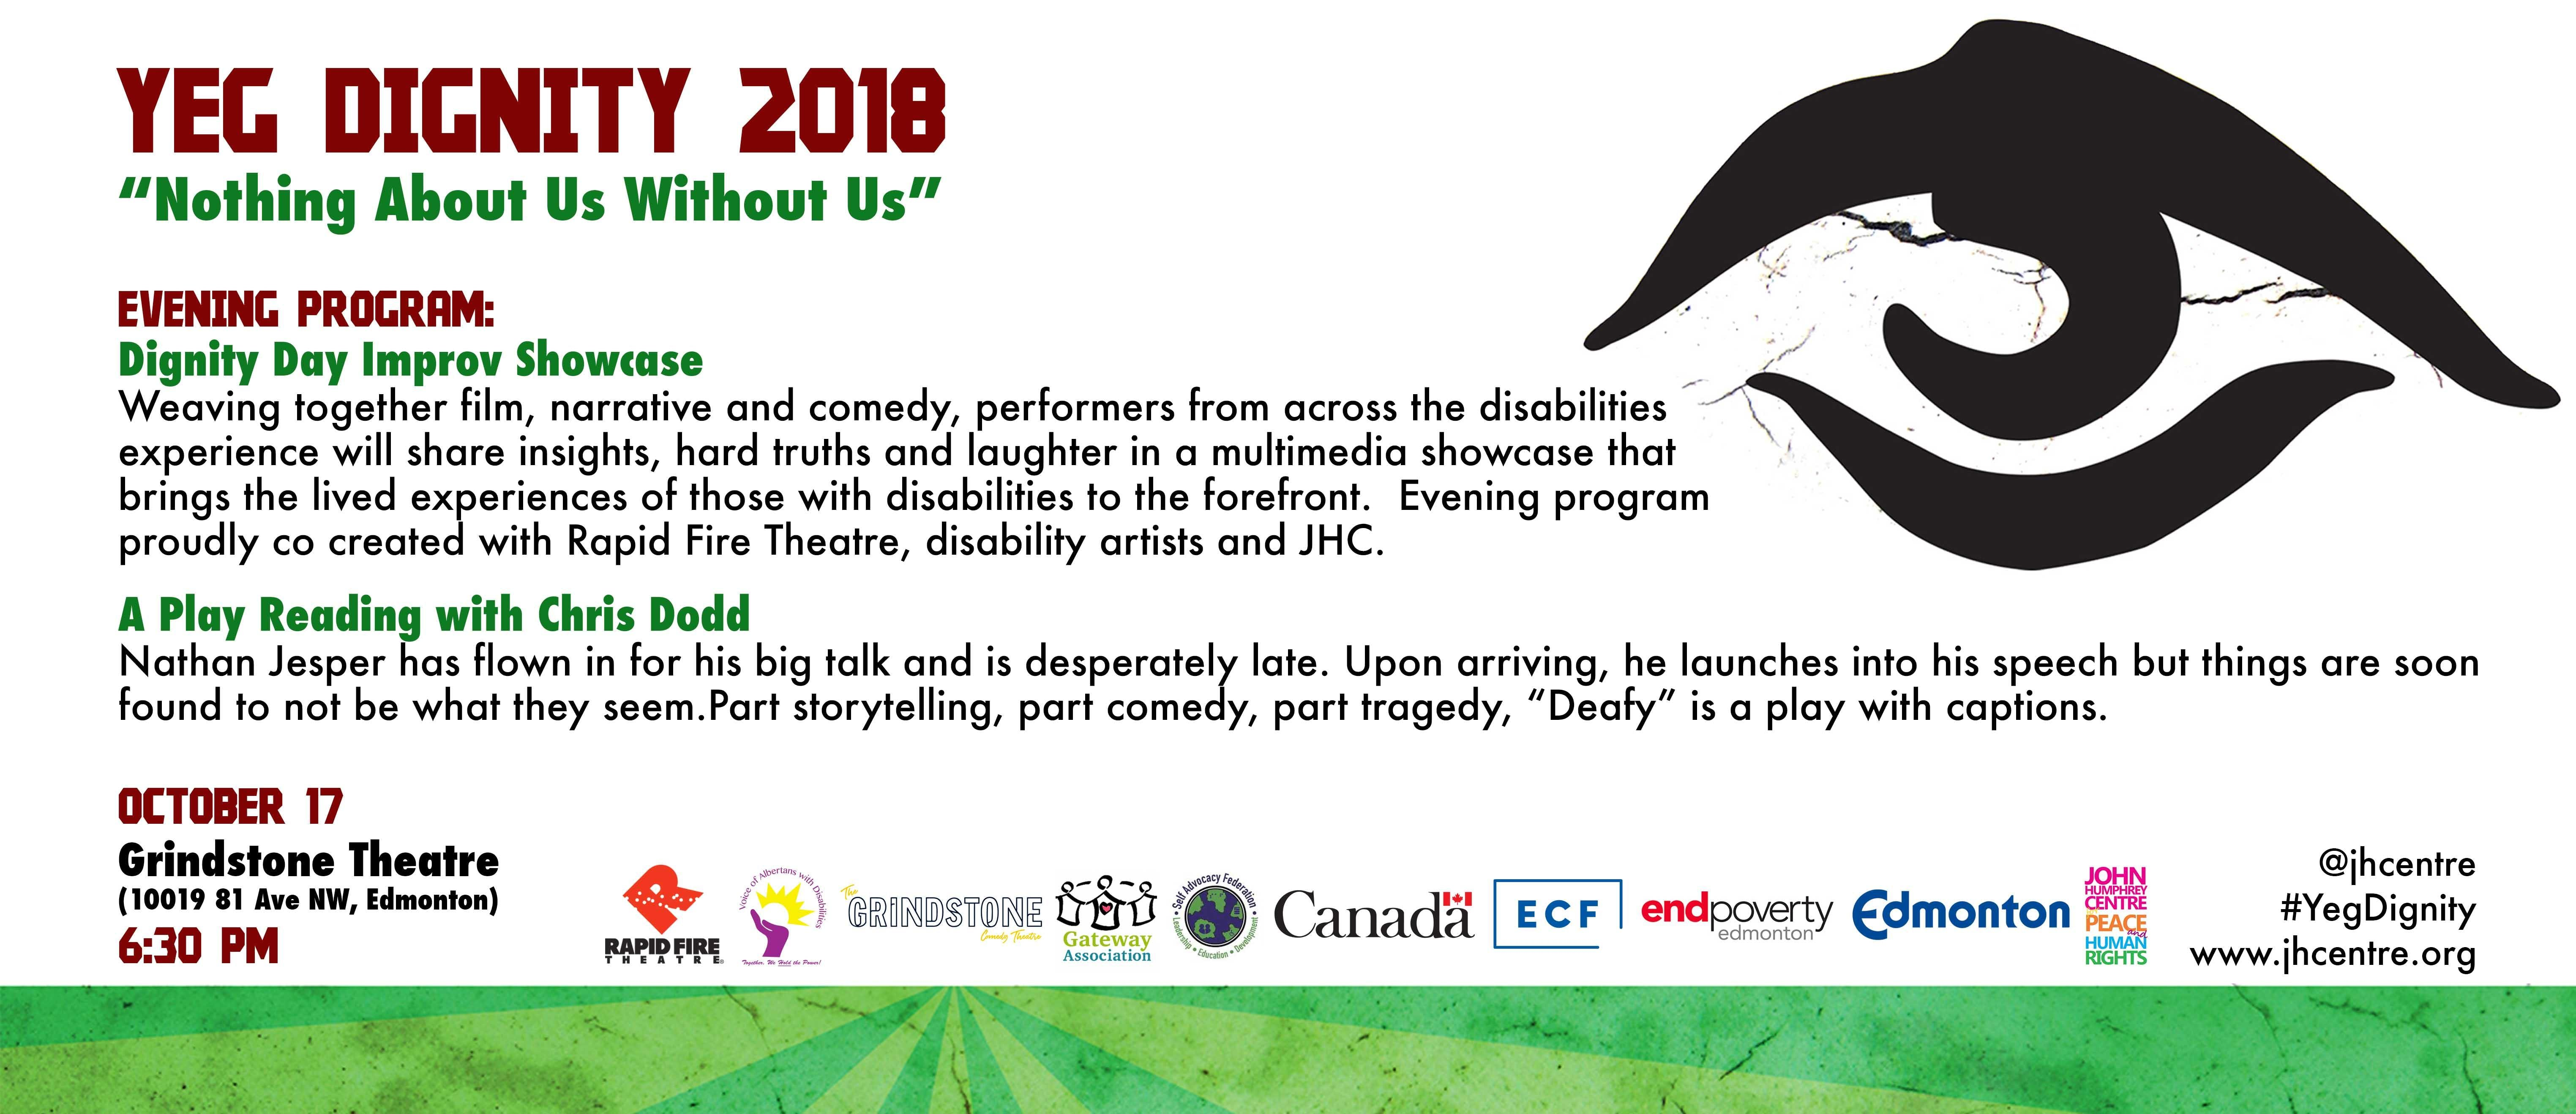 Dignity Day Improv Showcase & A Play Reading